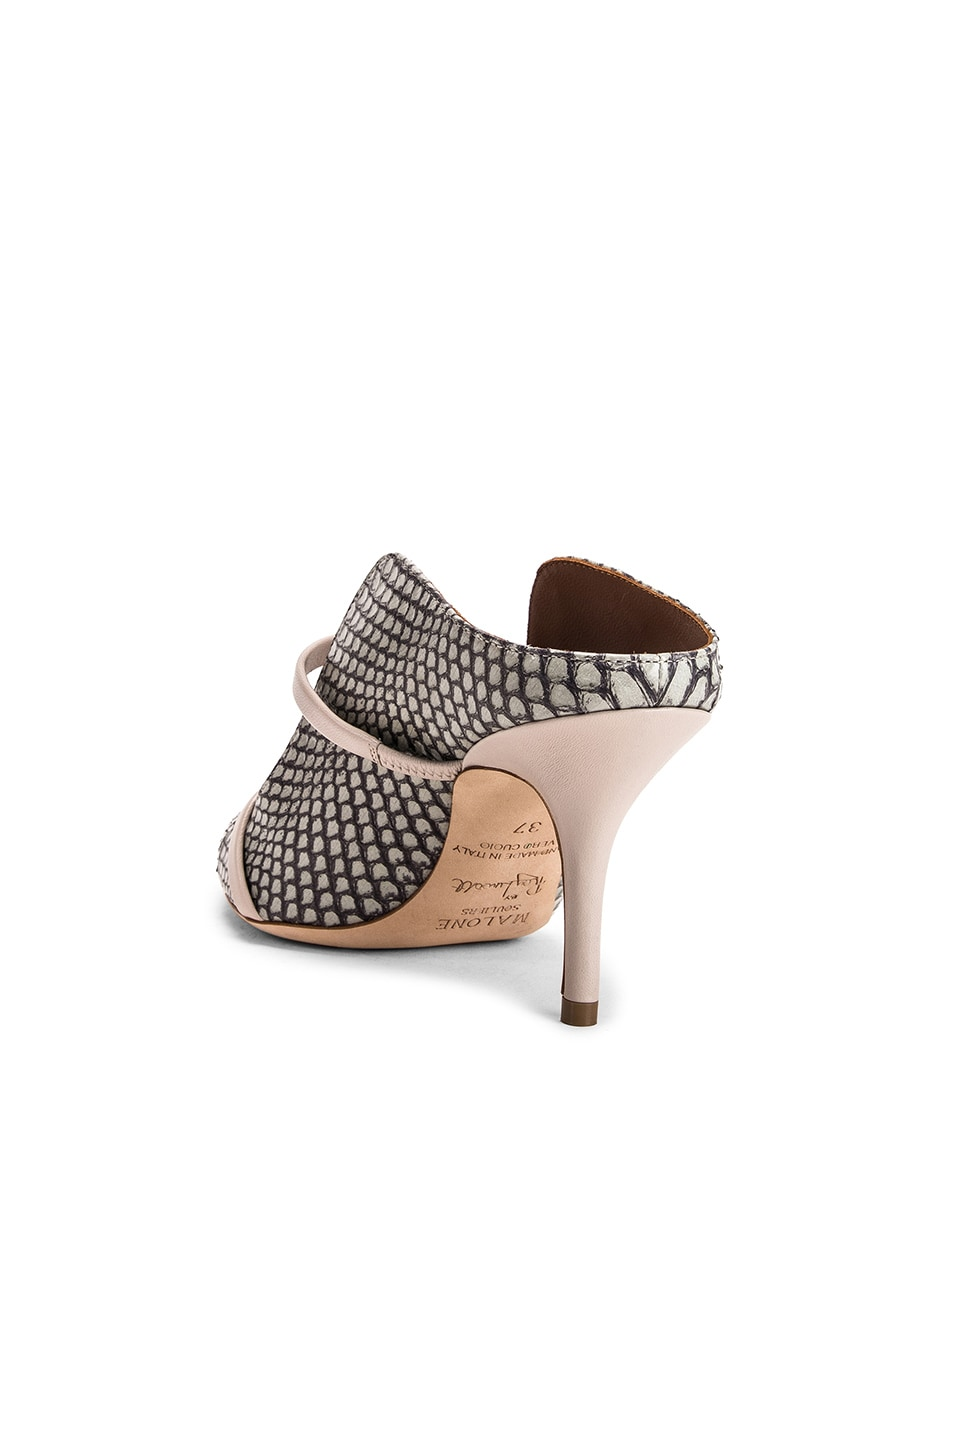 Image 3 of Malone Souliers Maureen MS 70 Heel in Peppermint & Grey